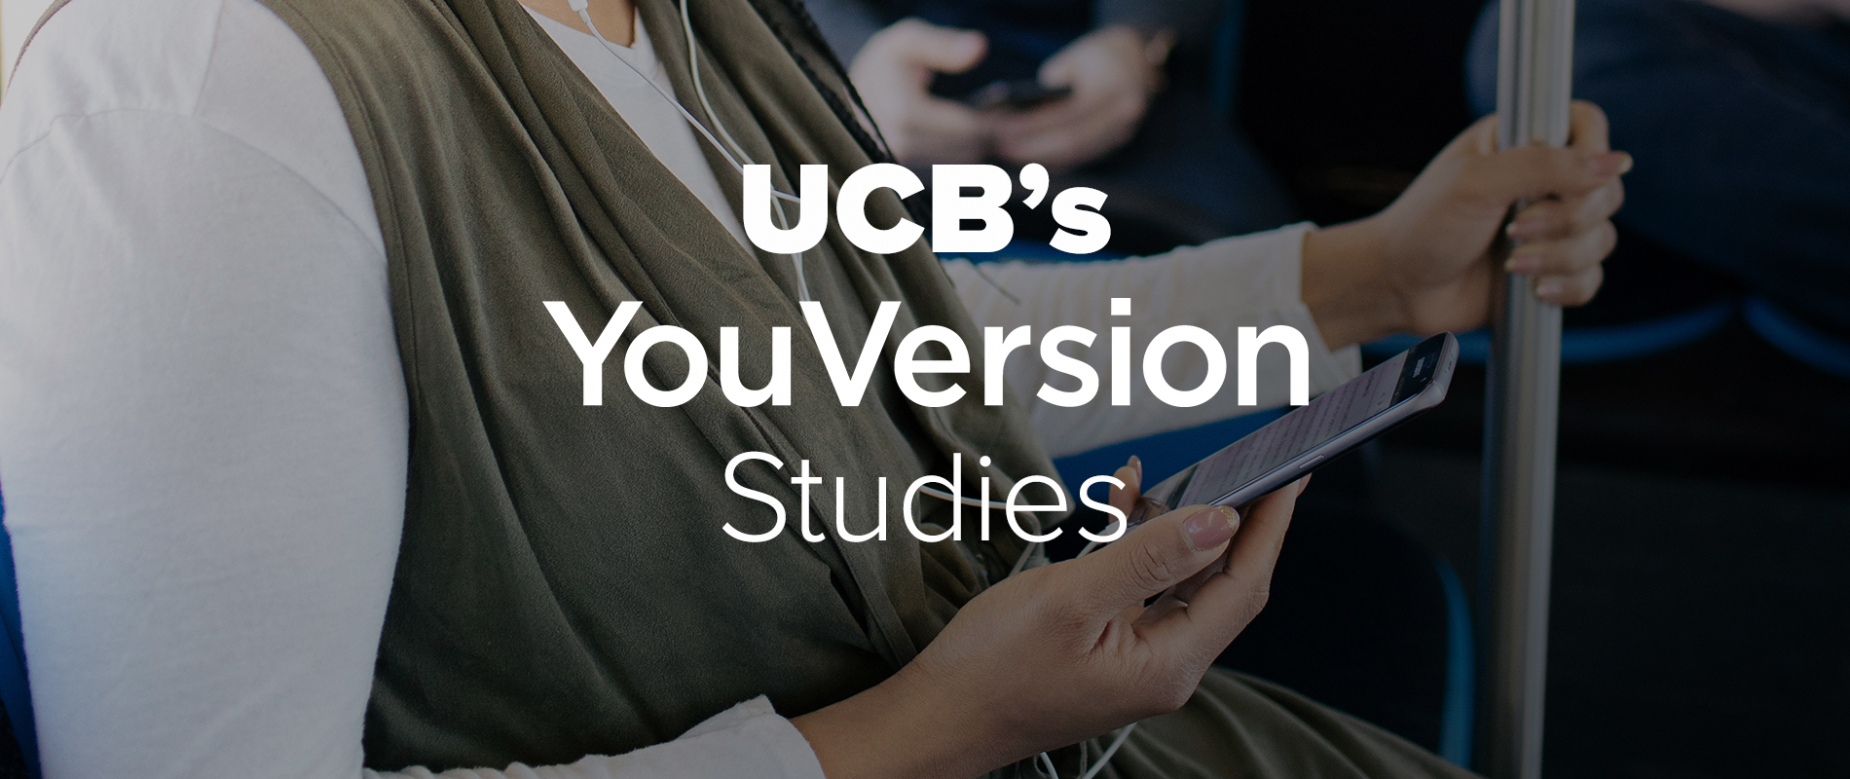 UCB Youversion studies